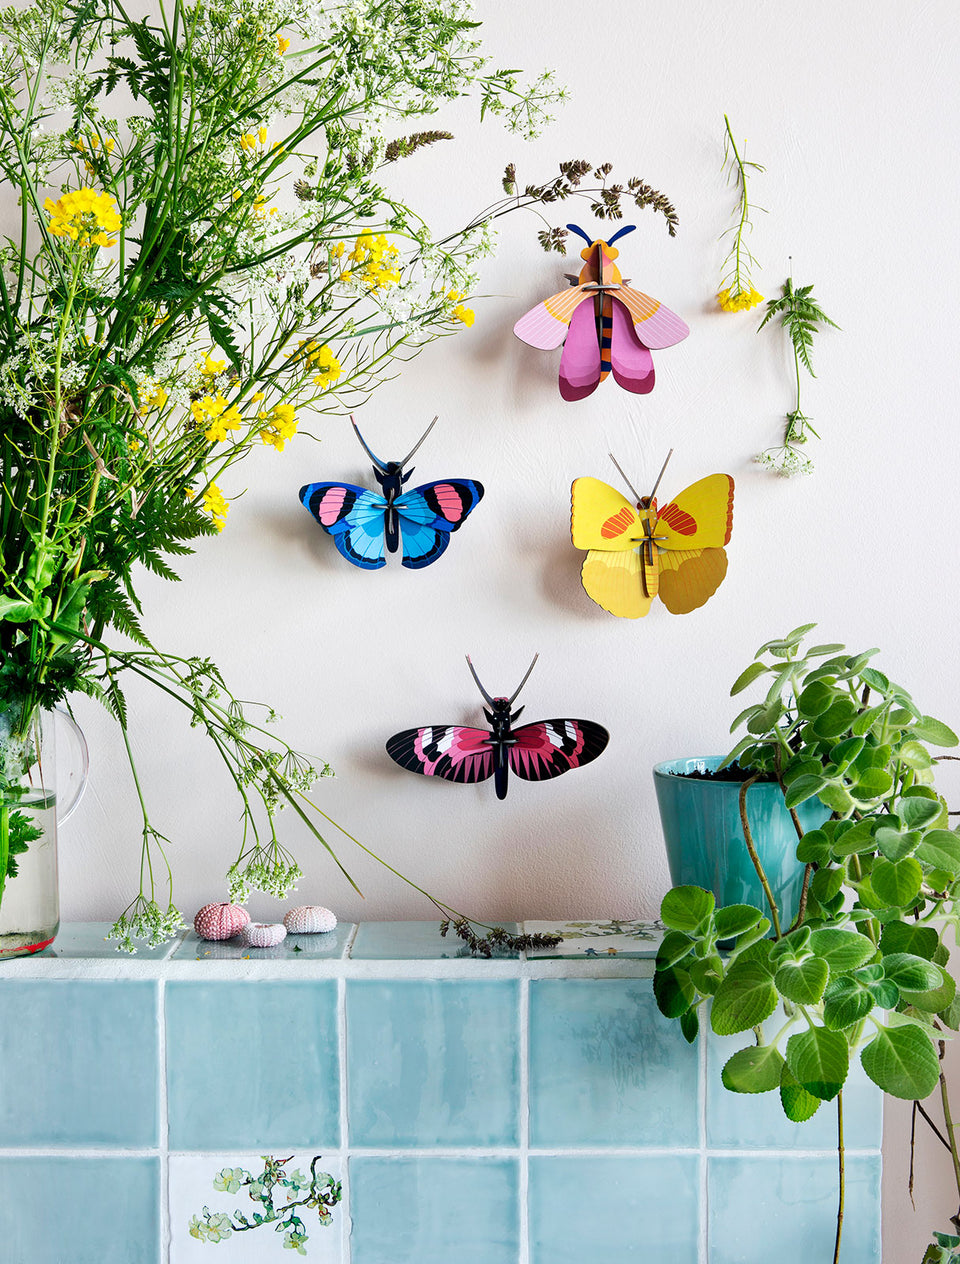 Peacock Butterfly Wall Decoration - PomPom